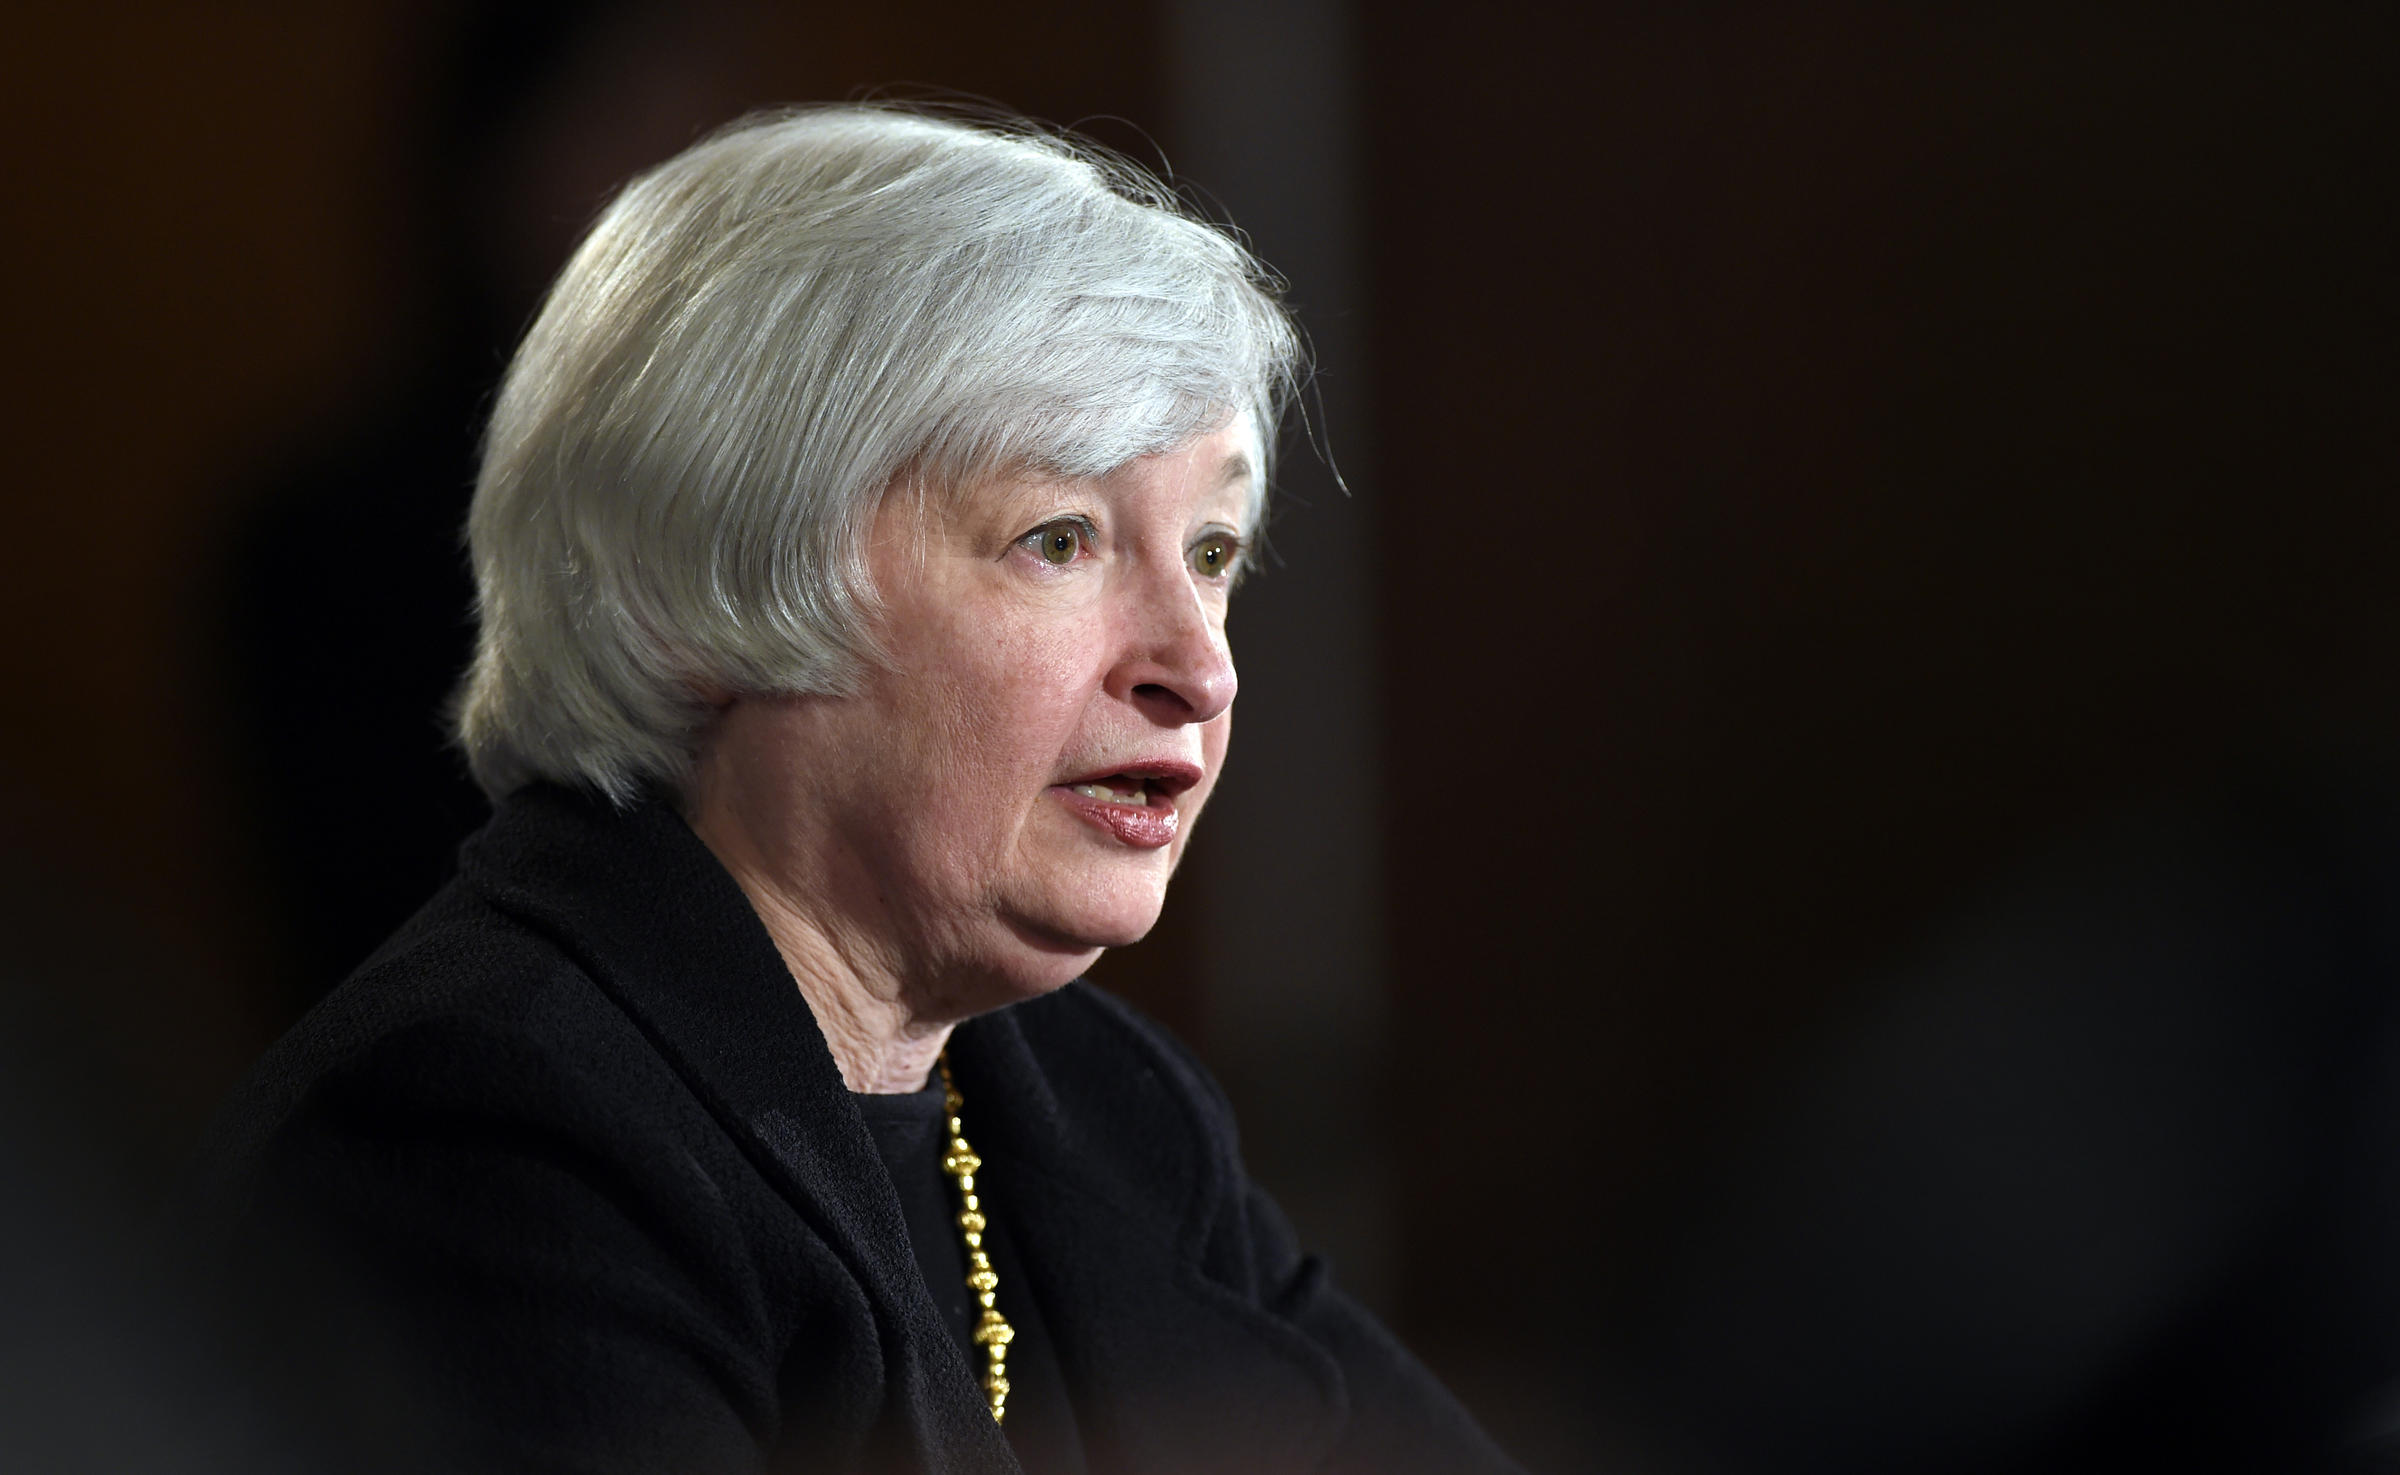 federal reserve to markets nothing to see here move along wuwm wuwm